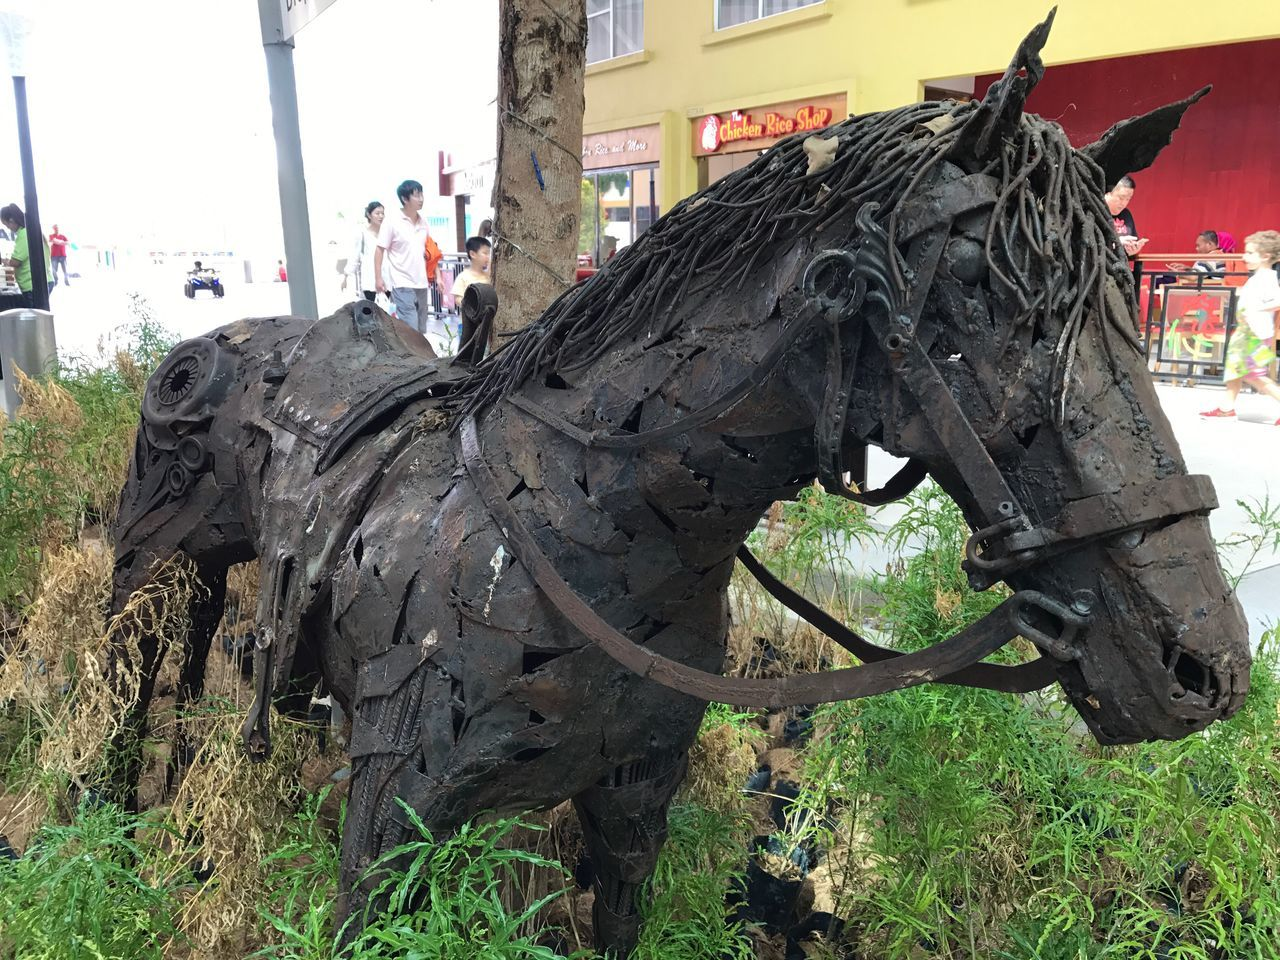 Horse Animal Themes Outdoors Working Animal Domestic Animals Built Structure Day Building Exterior Architecture Mammal Tree No People Sky Statue Close-up ArtWork Horse made of scraps Scrapsculpture Scraps